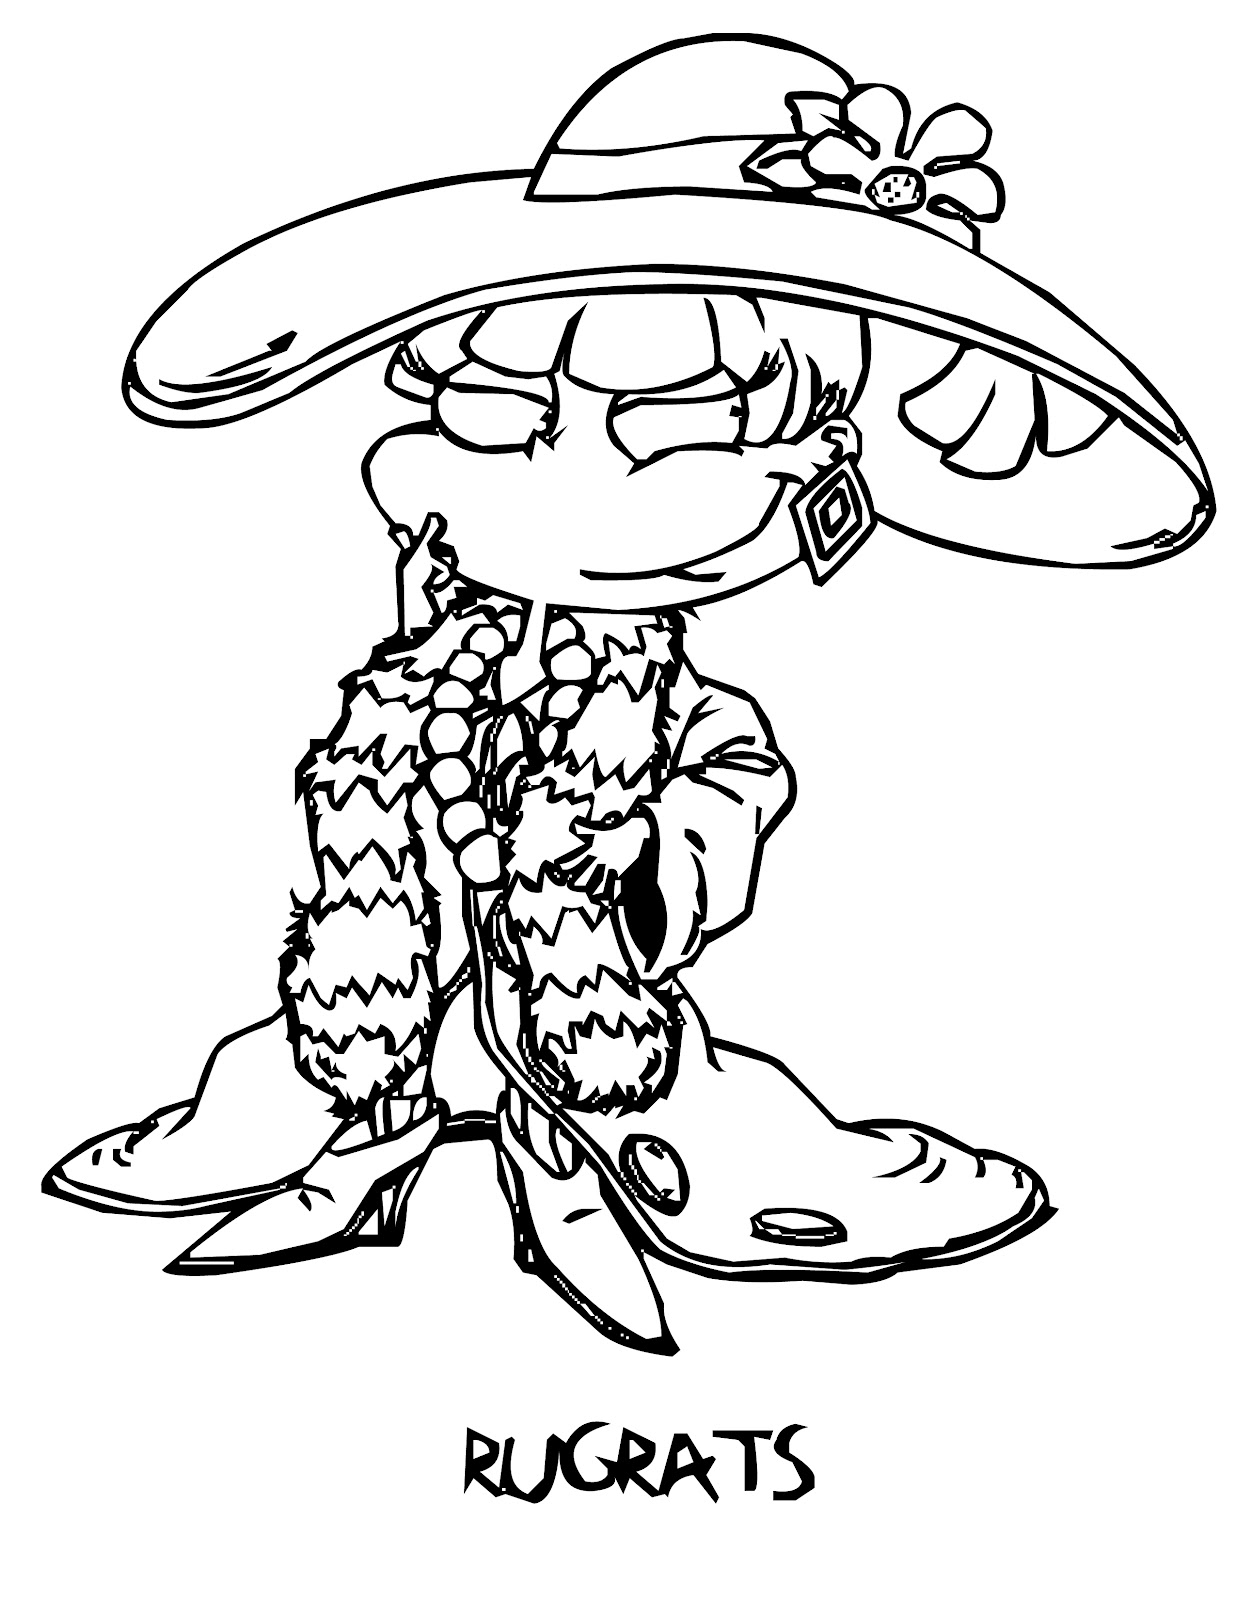 rugrats coloring pages 27 best rugrats coloring pages images on pinterest coloring rugrats pages 1 1